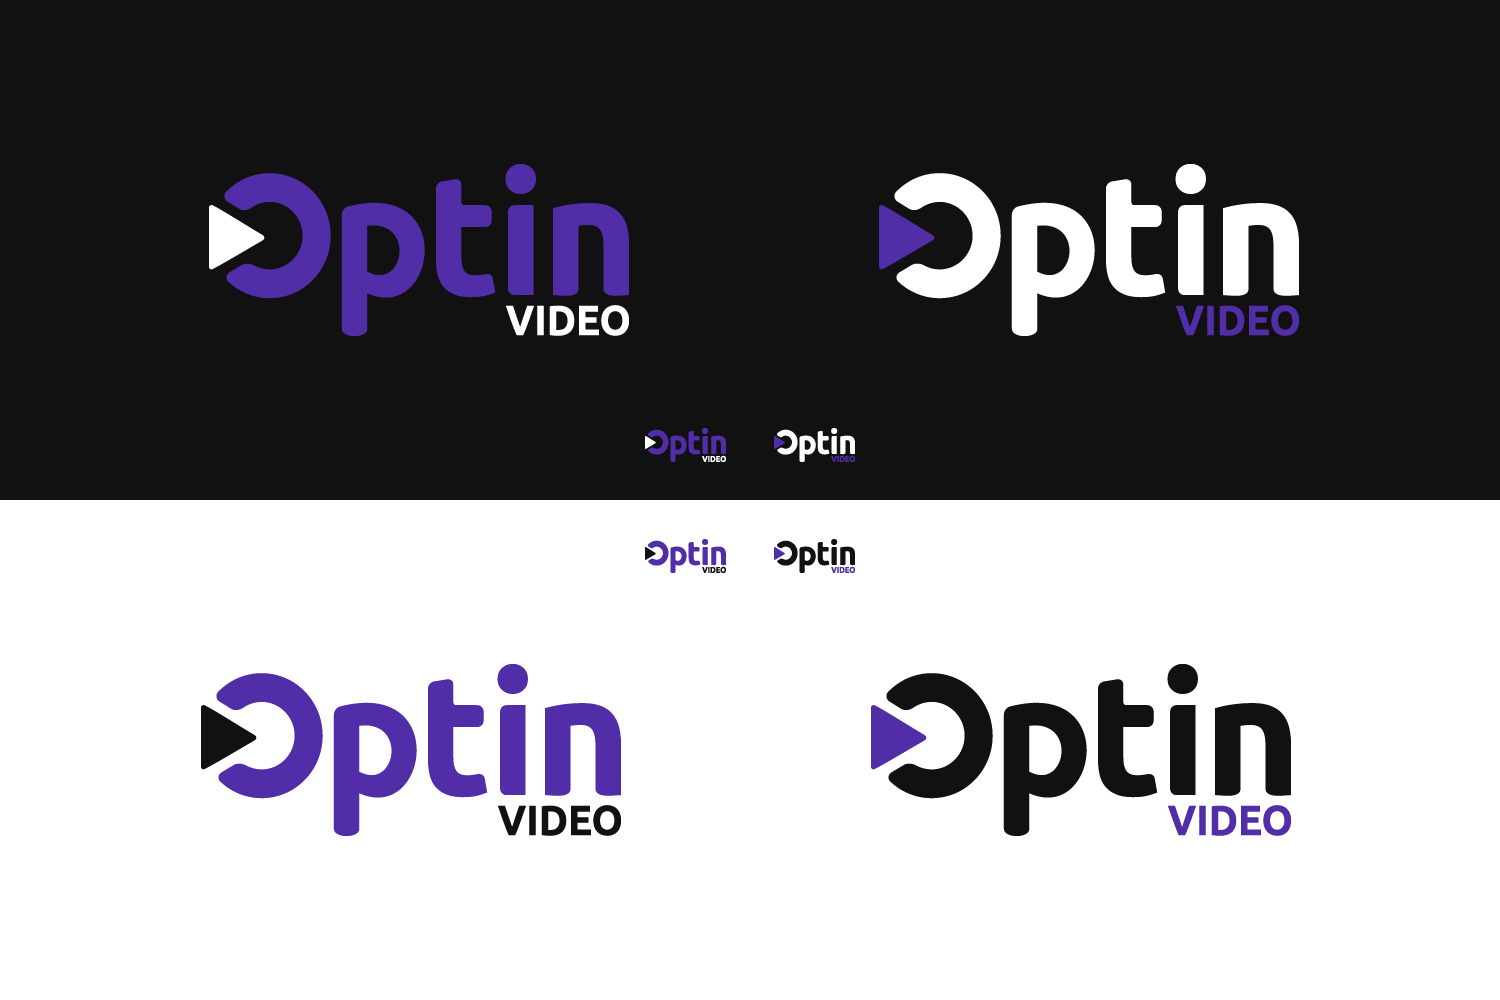 Clean logo design for video marketing business